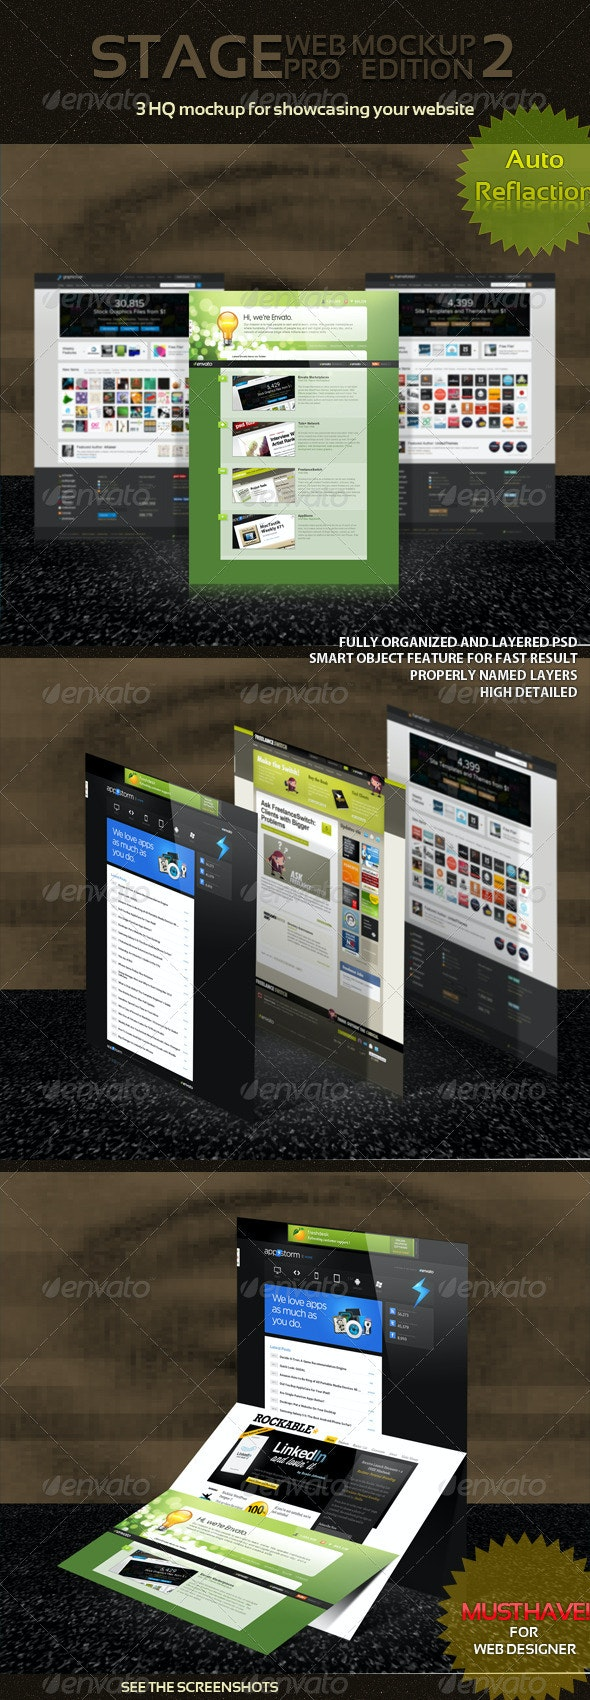 Stage Web Mockup Pack - 2 - Website Displays